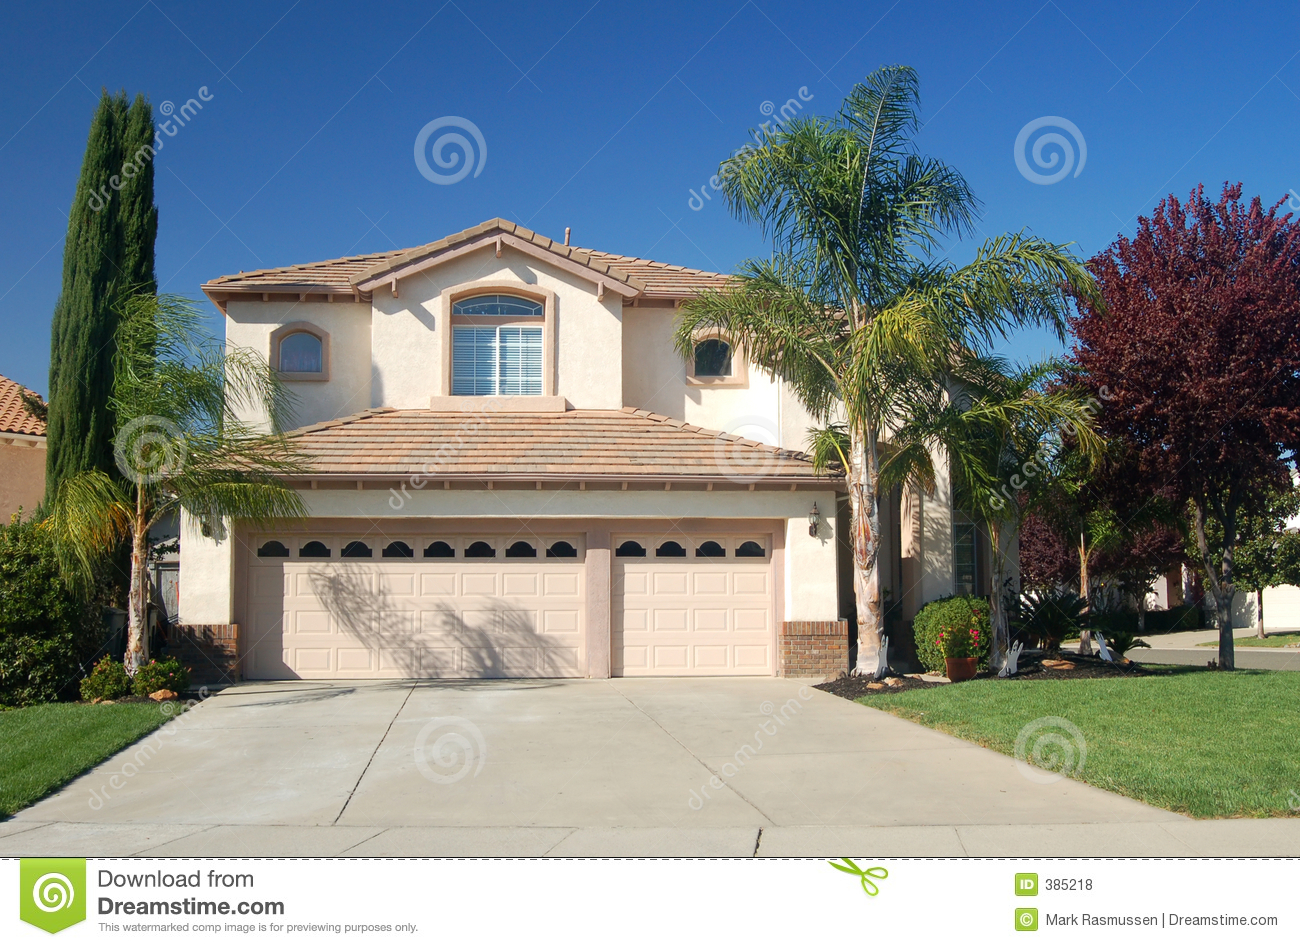 Nice house in california royalty free stock photos image for House and home ca